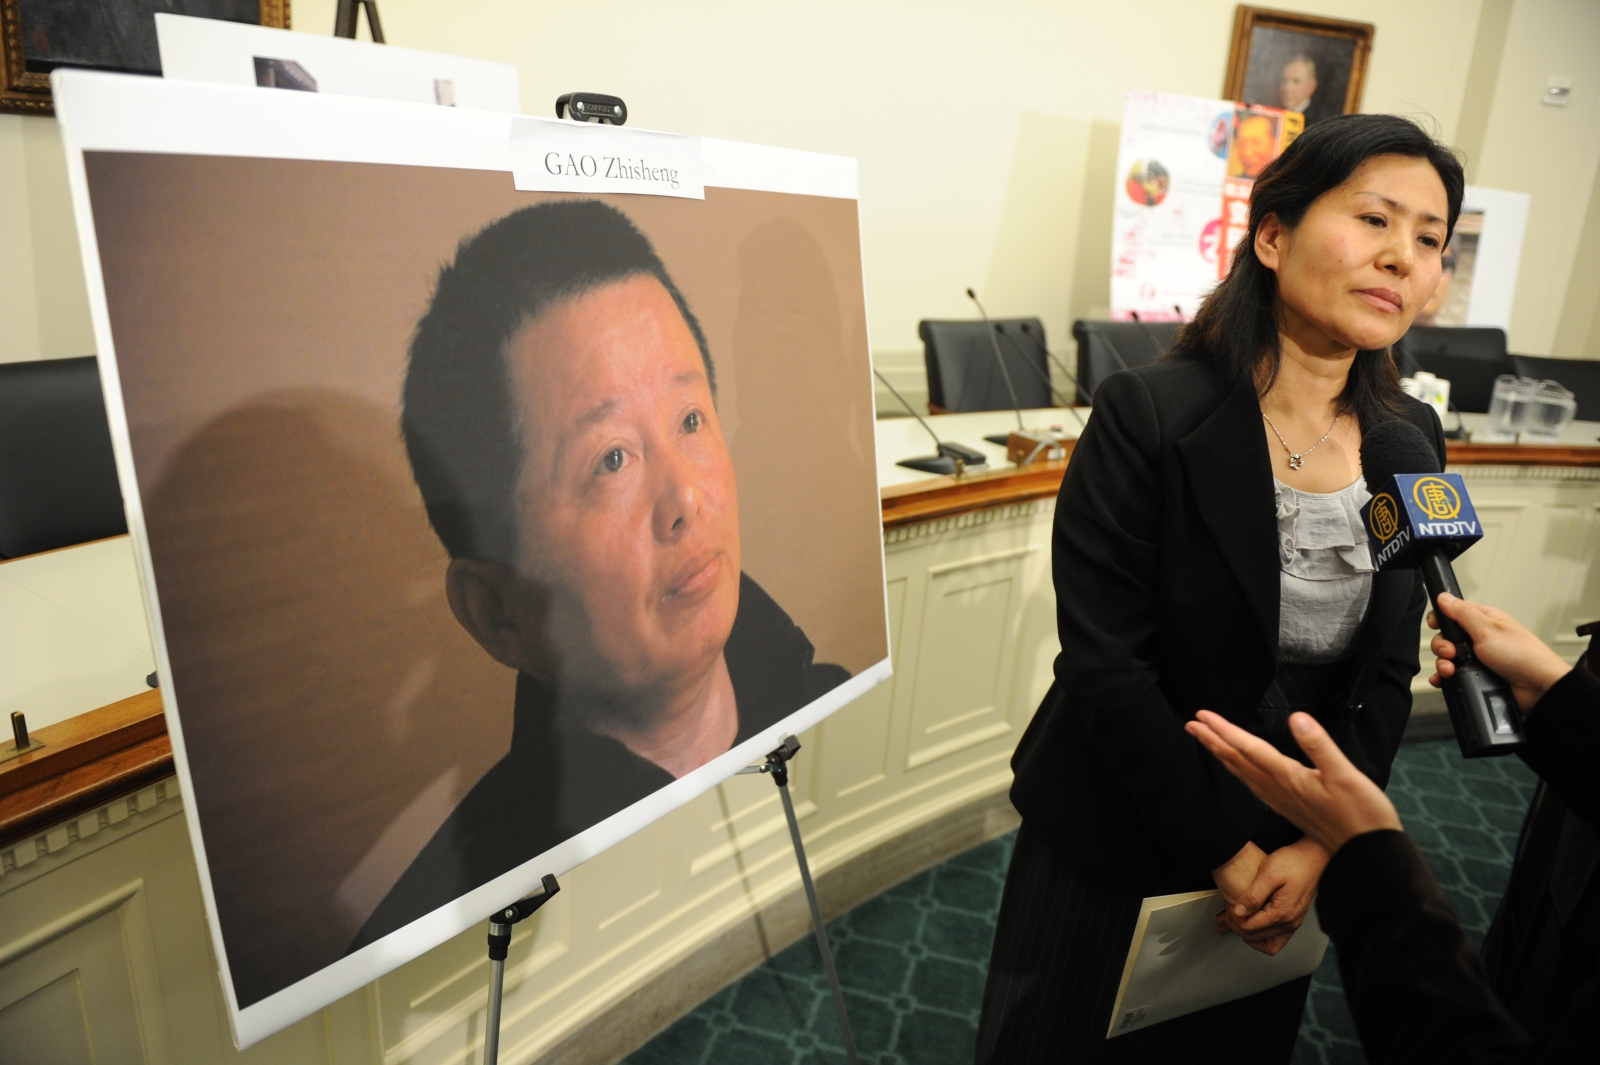 Geng He with a picture of her jailed husband dissident lawyer Gao Zhisheng in 2011, (Getty Tim Sloan)